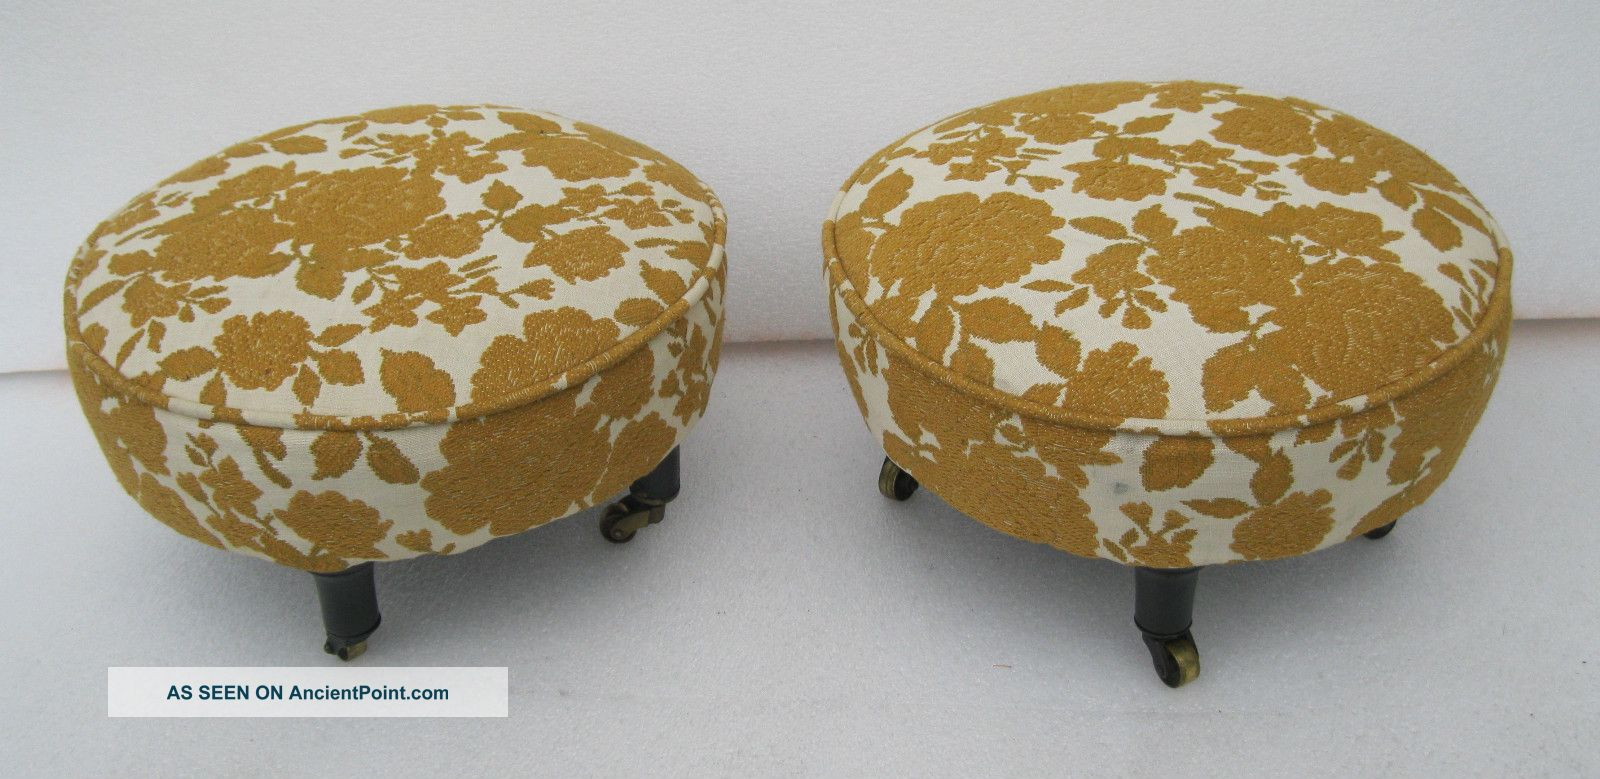 Pair Of Matching Antique Period 1800 ' S Foot Stools Post-1950 photo